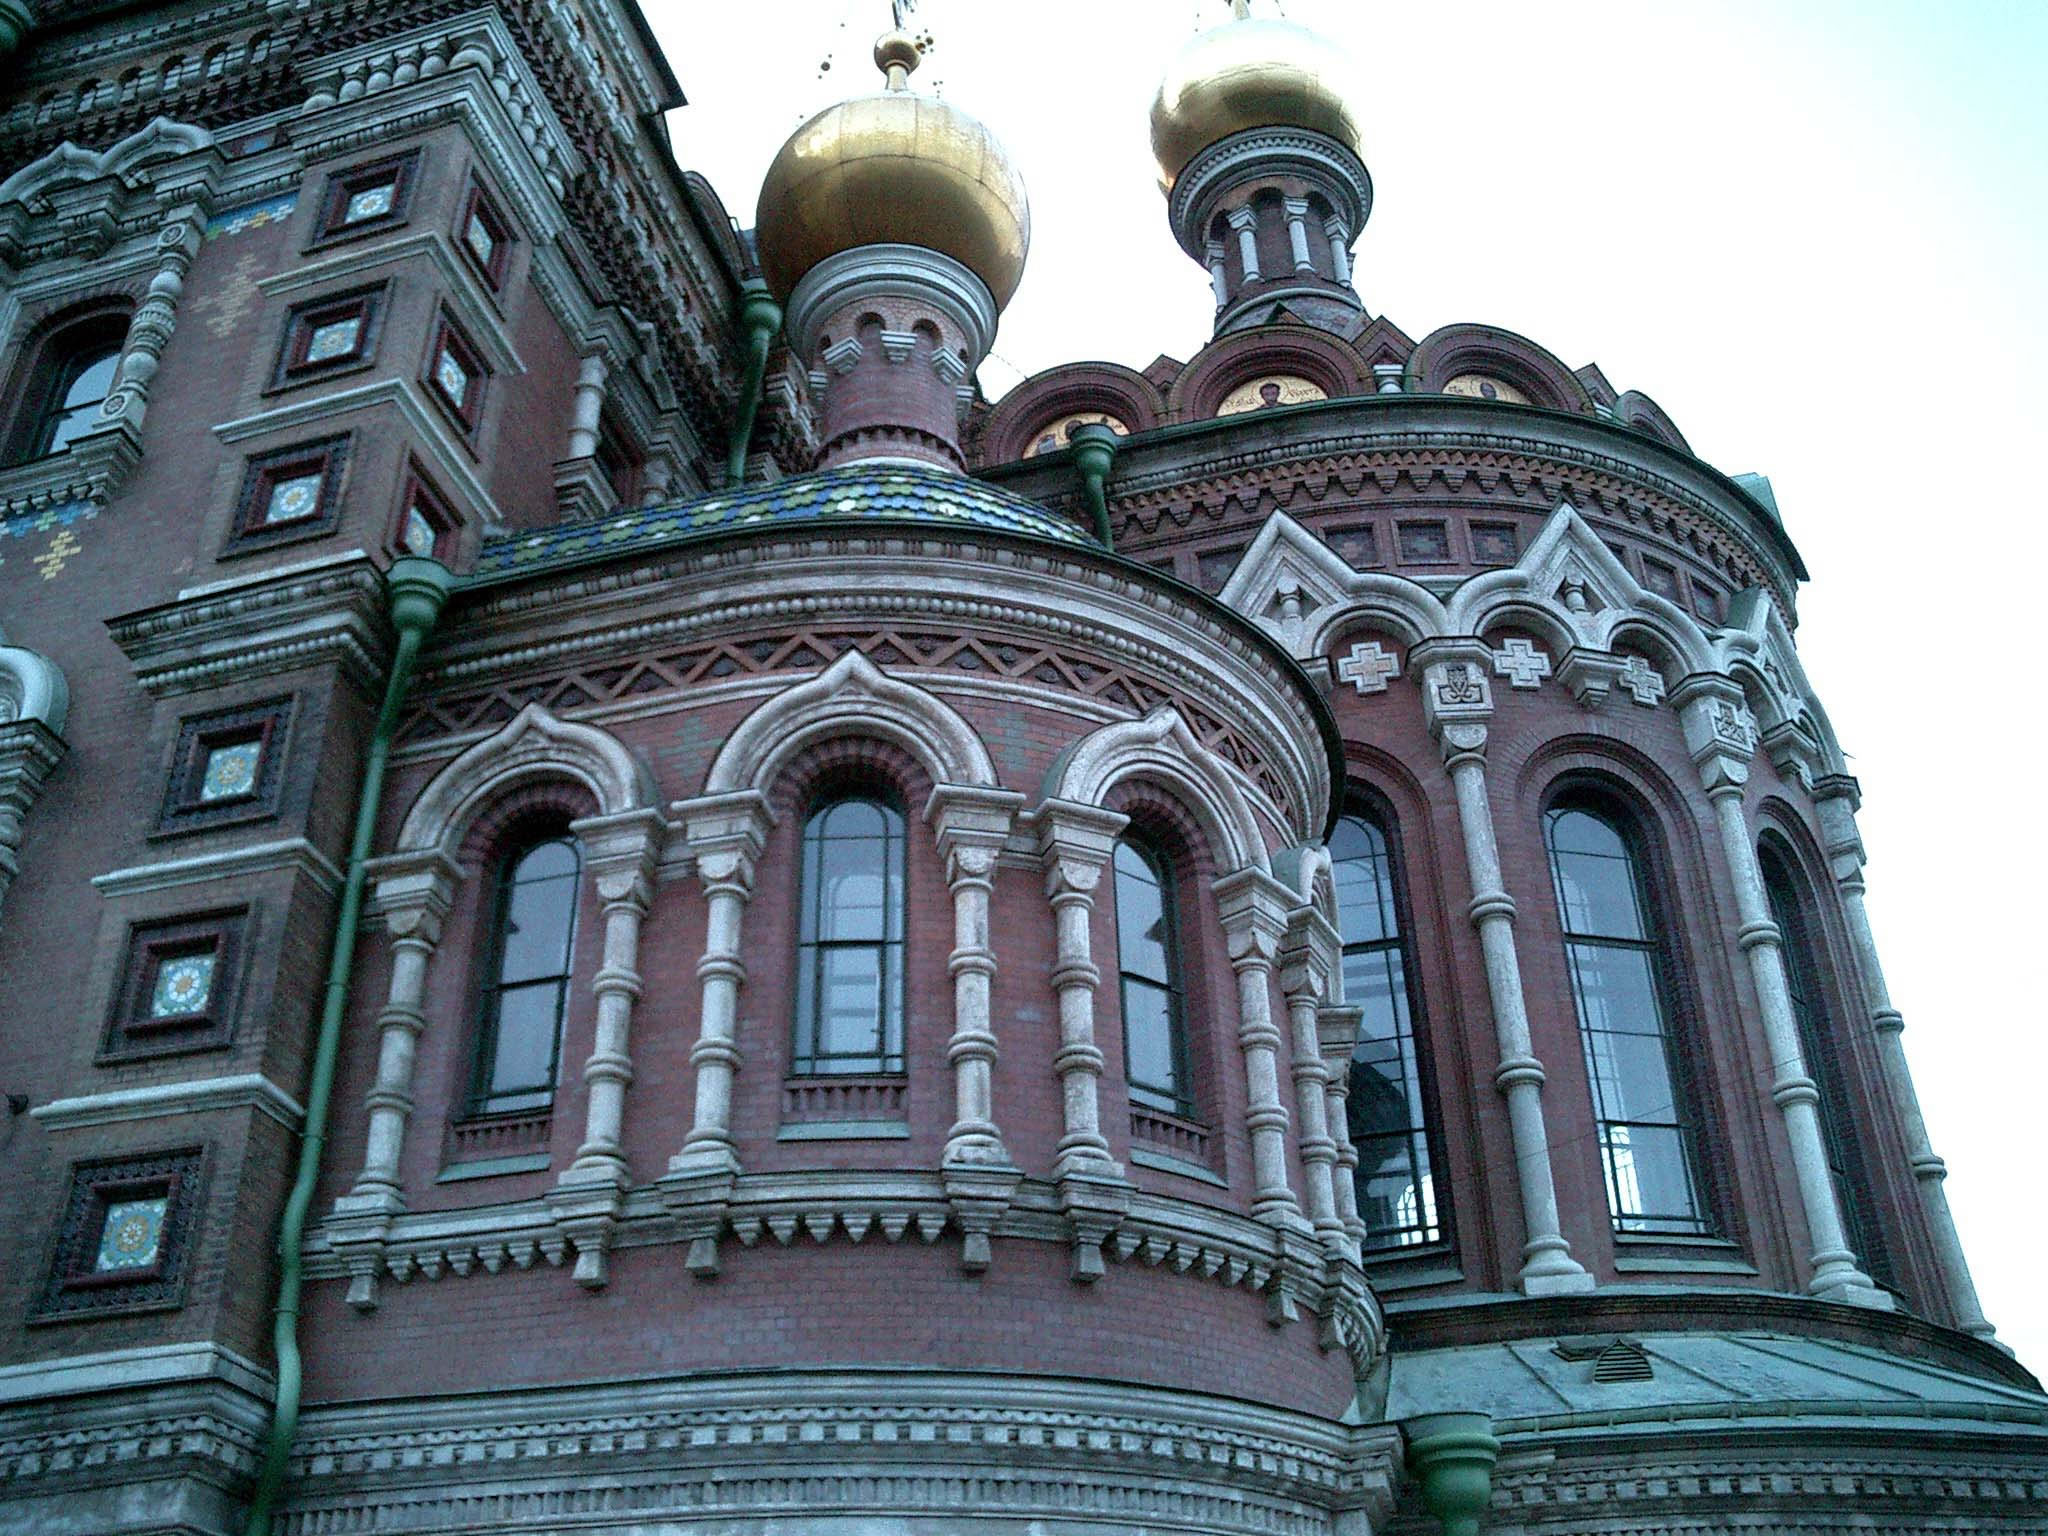 St Petersburg Architecture Church of the Savior on Blood 2005 07